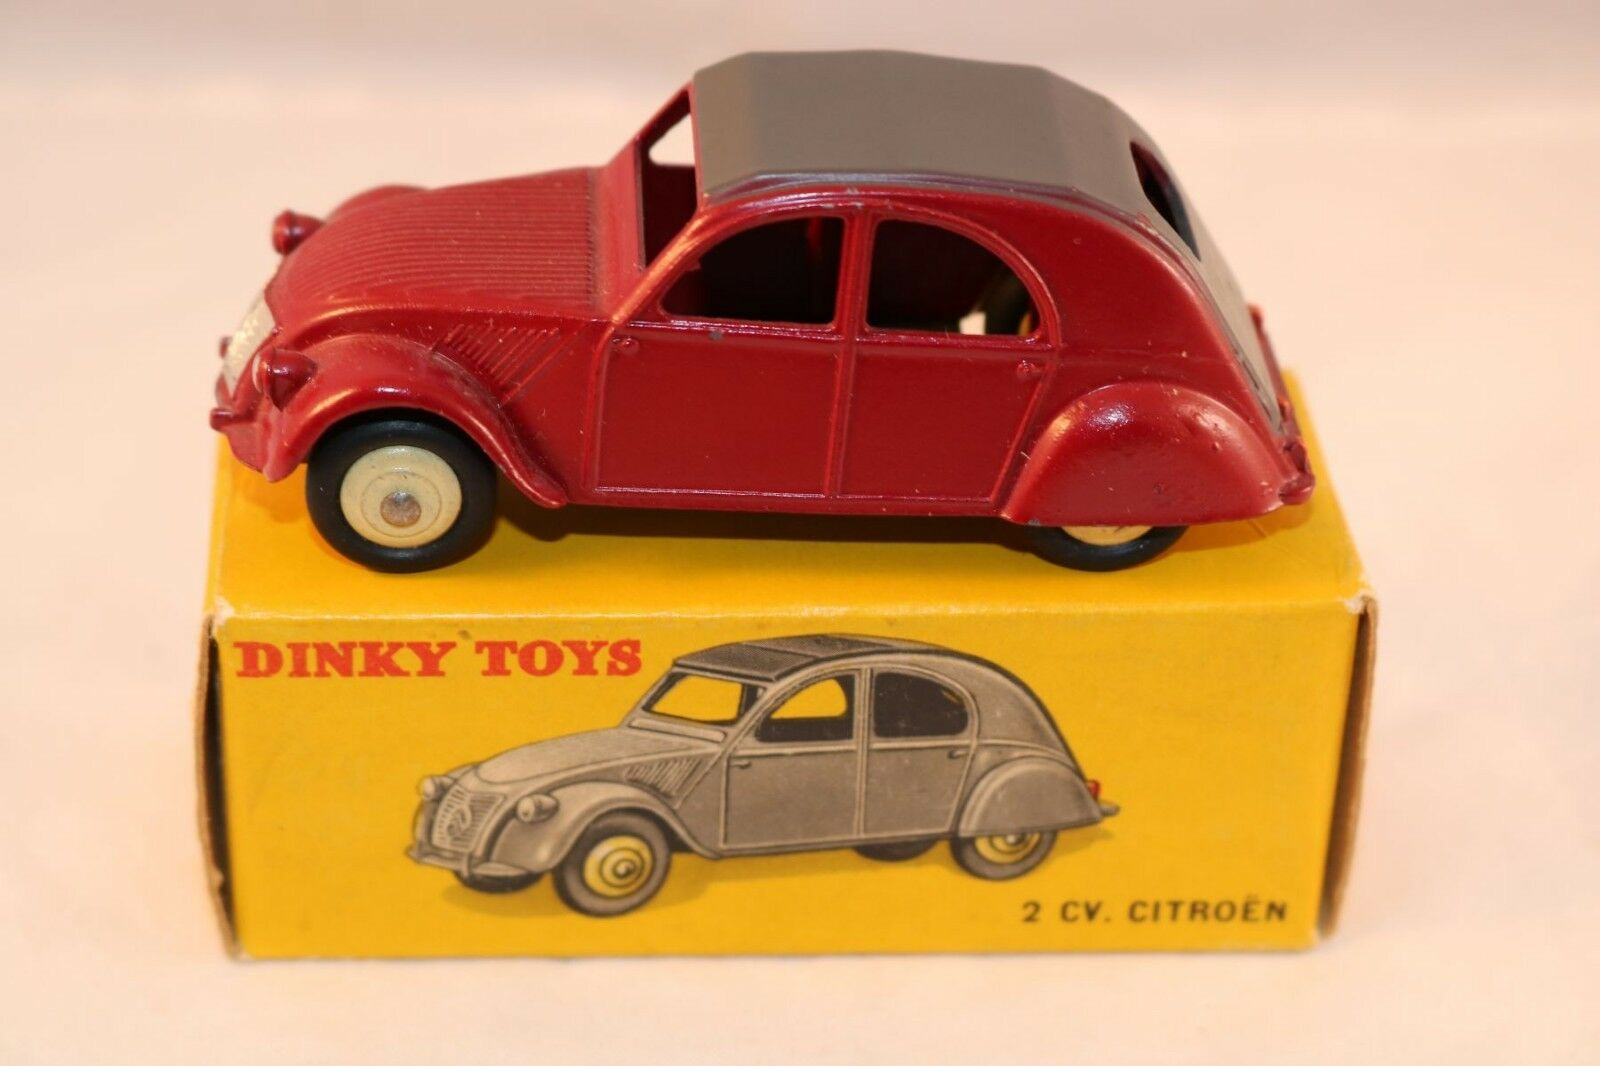 Dinky Toys 535 2 CV Citroen in Maroon  very near mint in box what a beauty  service attentionné